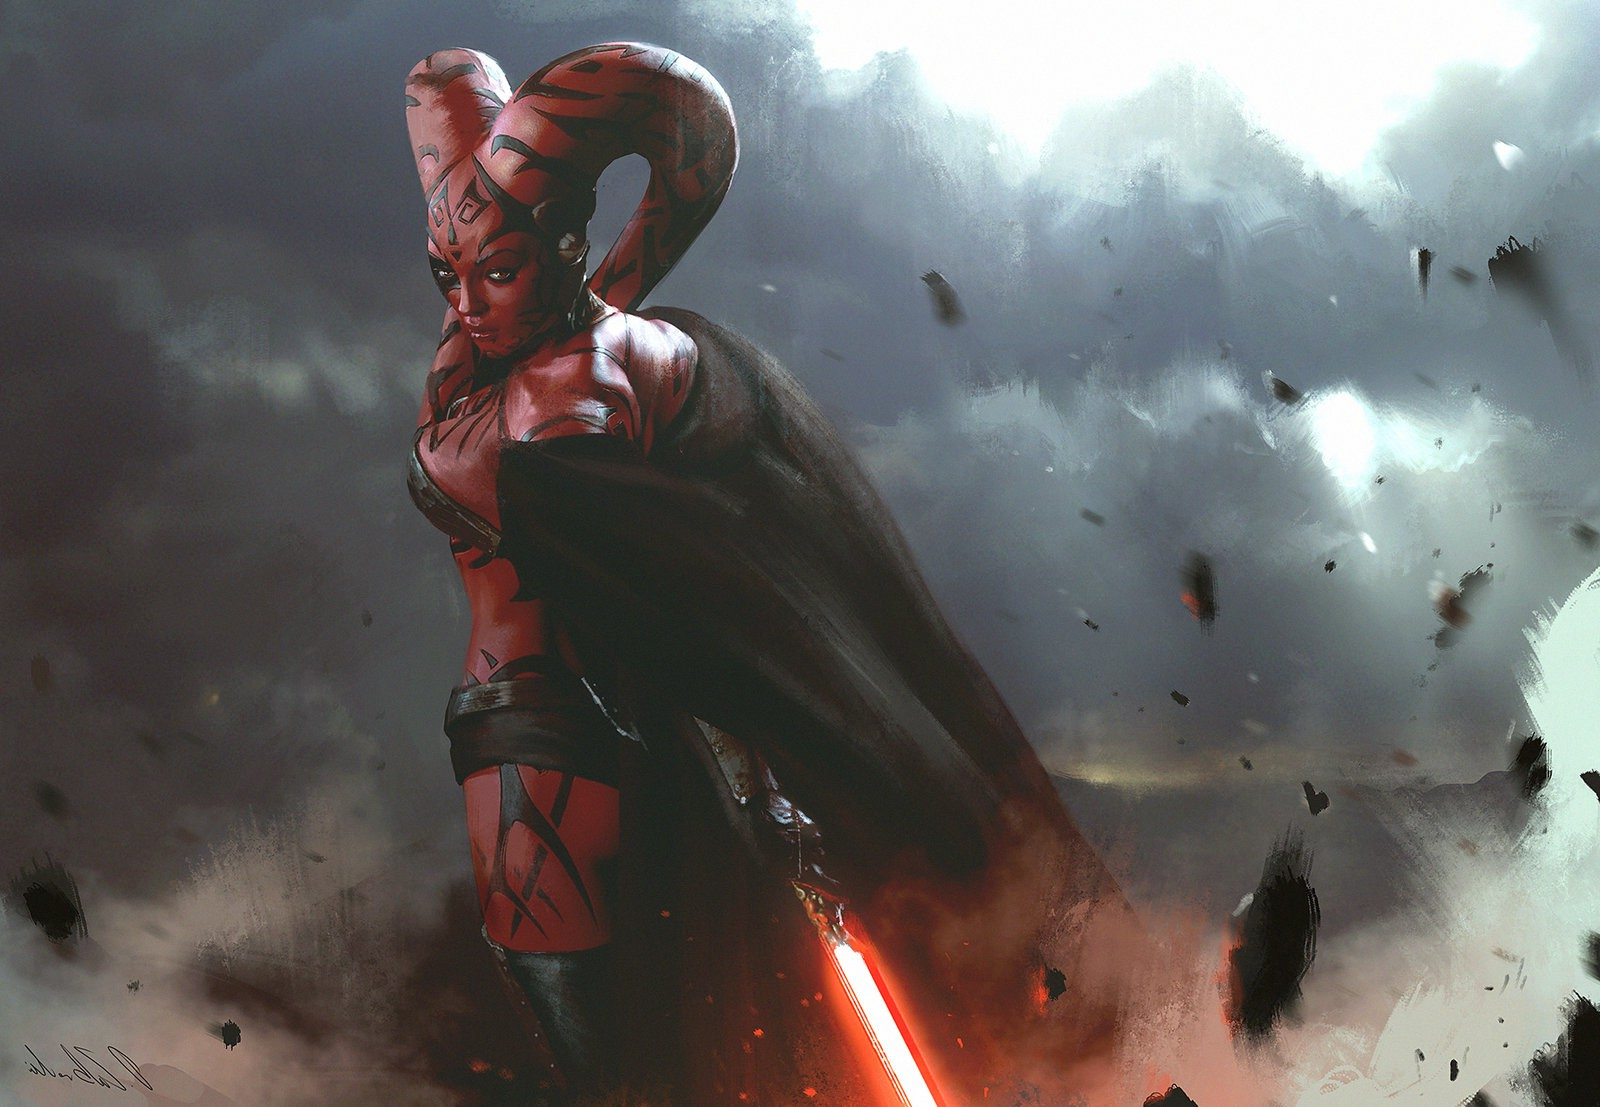 Star Wars Sith 1600x900 Wallpapers For Android